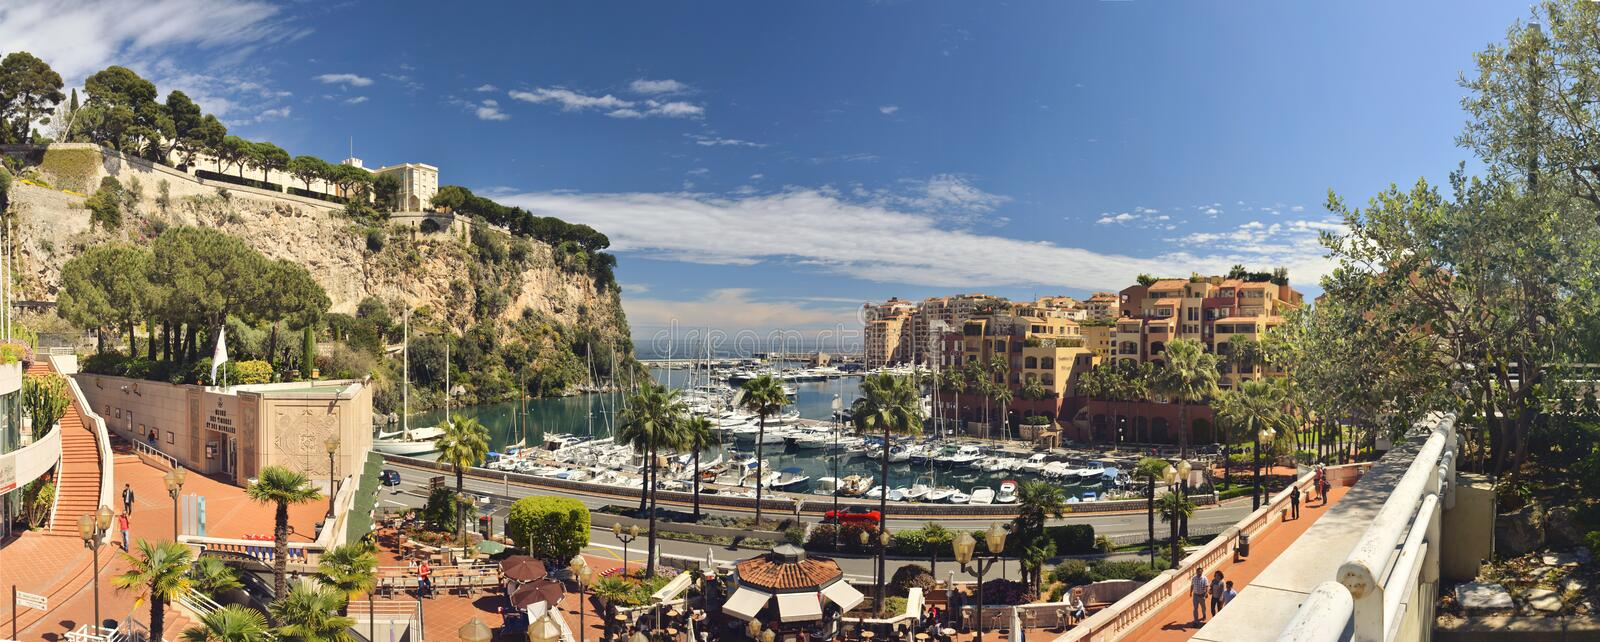 Panoramic photograph of port Fontvielle, Monaco. / Monte Carlo stock images